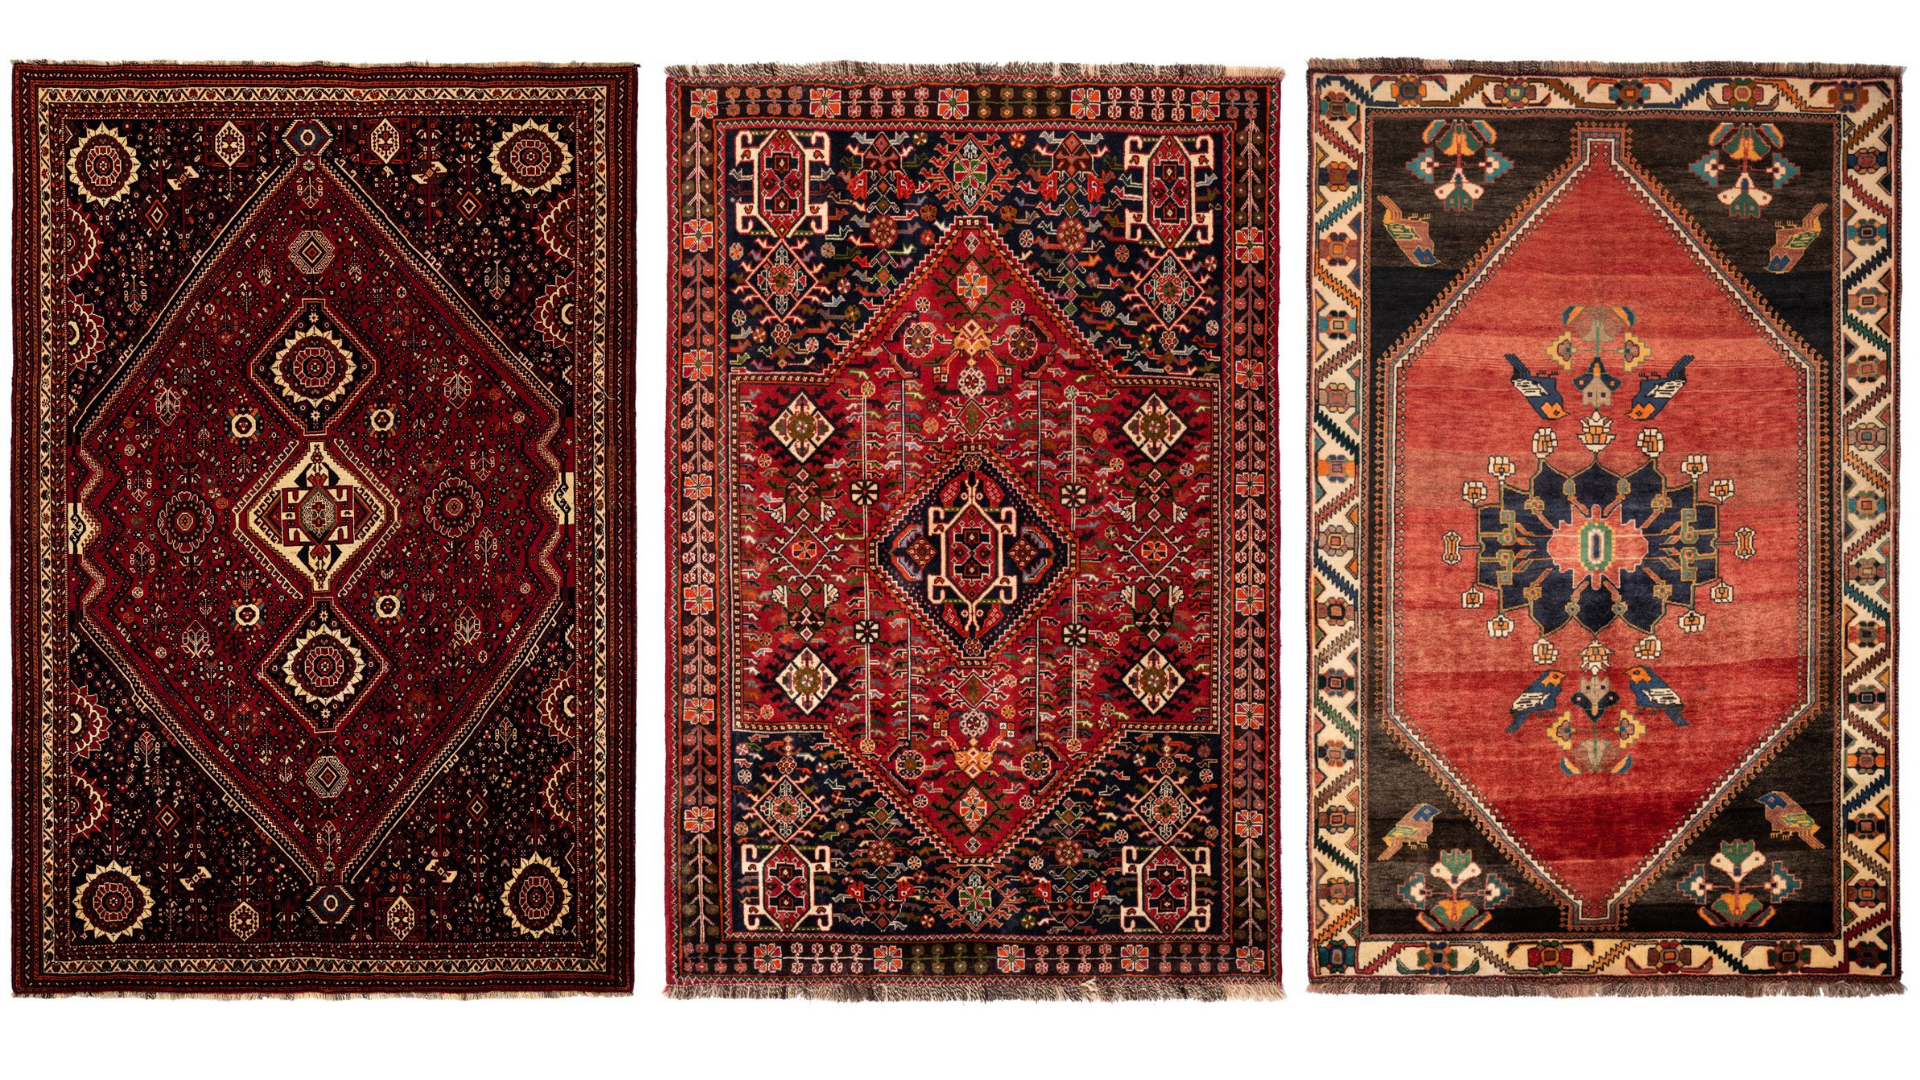 persian rugs, oriental rugs, home decor, home accessories, london rugs, uk rugs, rug collections, rug guide, rug encyclopedia